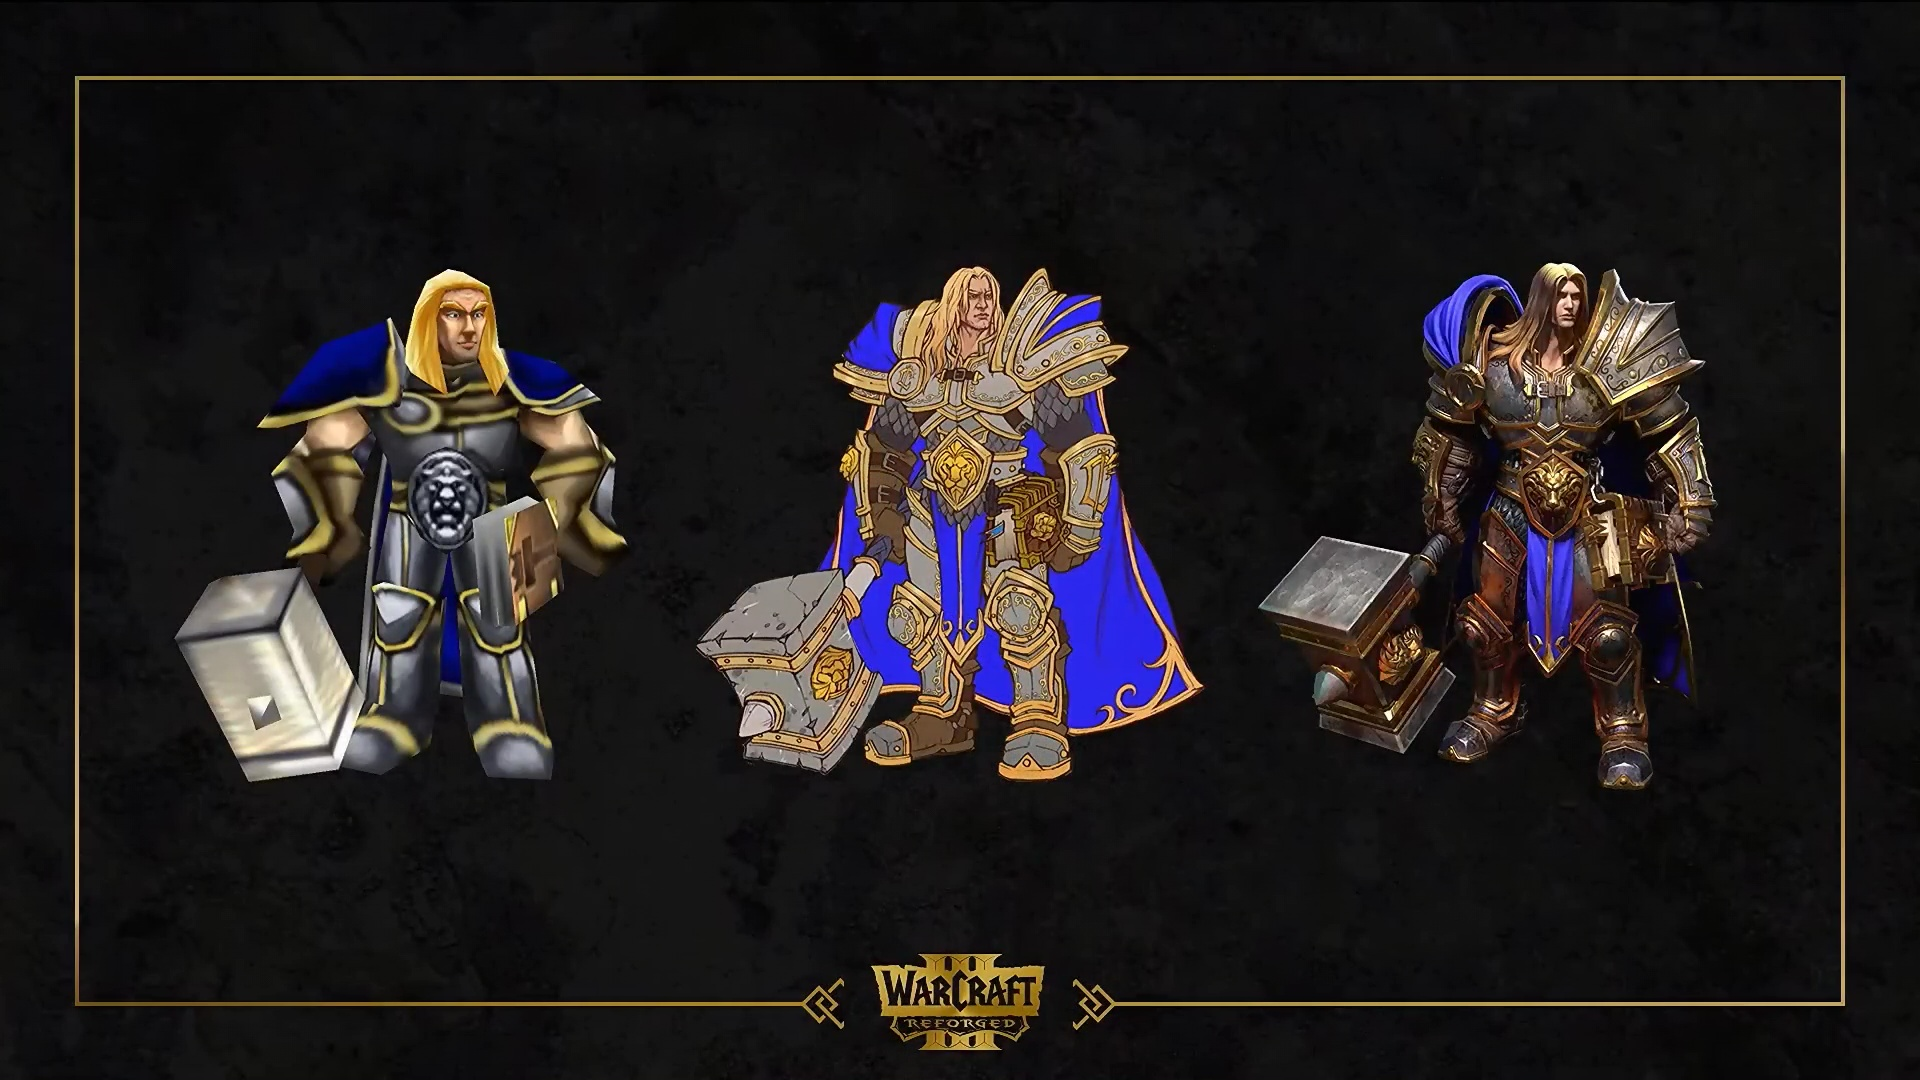 BlizzCon 2018 Warcraft III: Reforged Panel Transcript